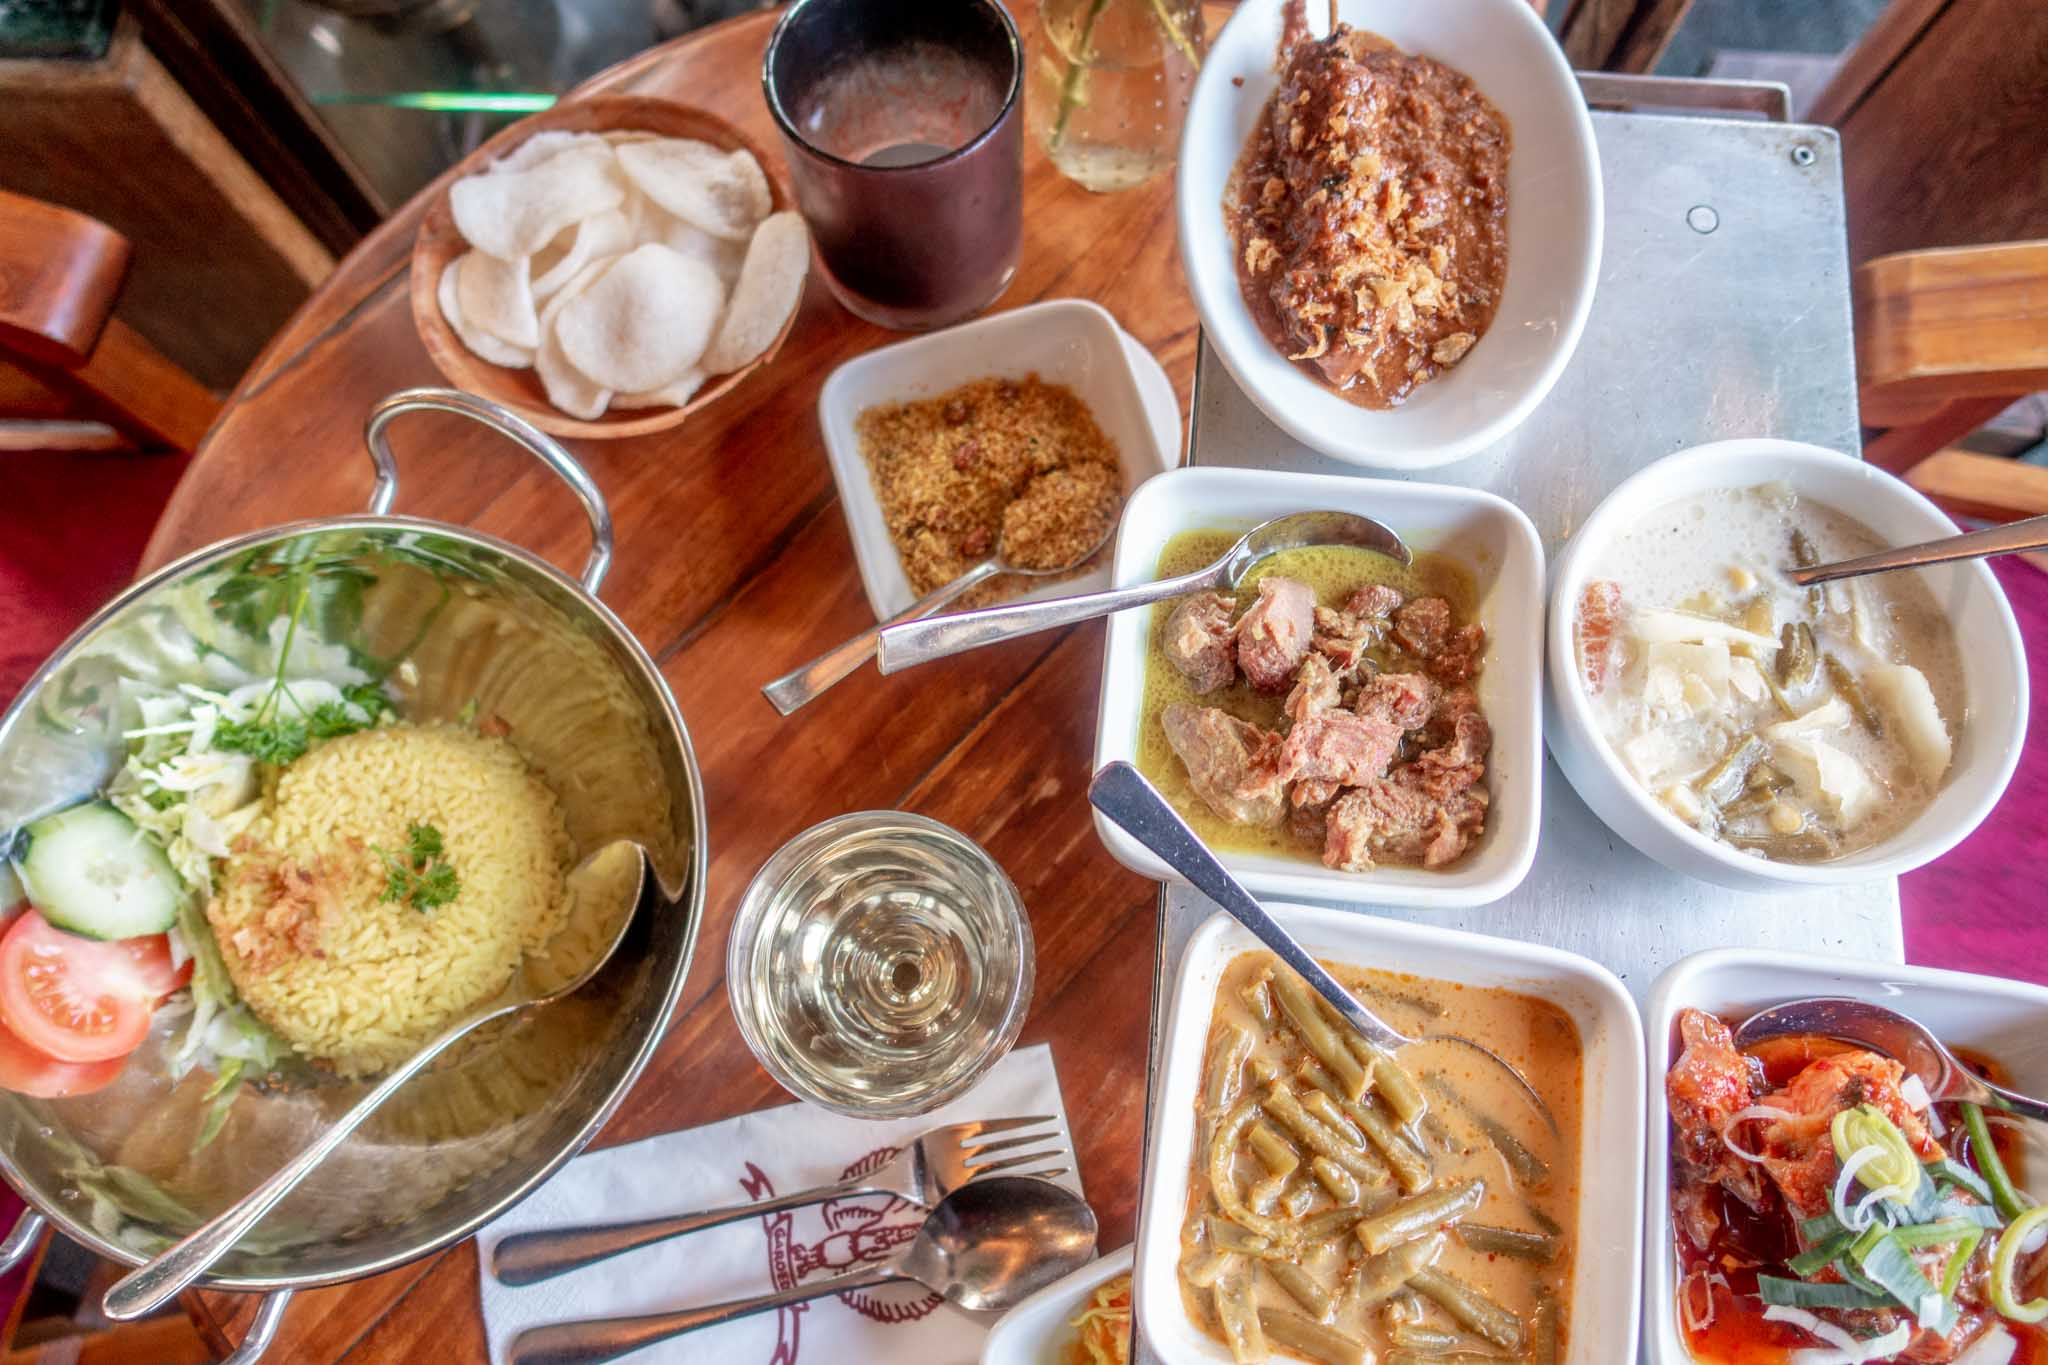 Lots of Indonesian food dishes in bowls on a table